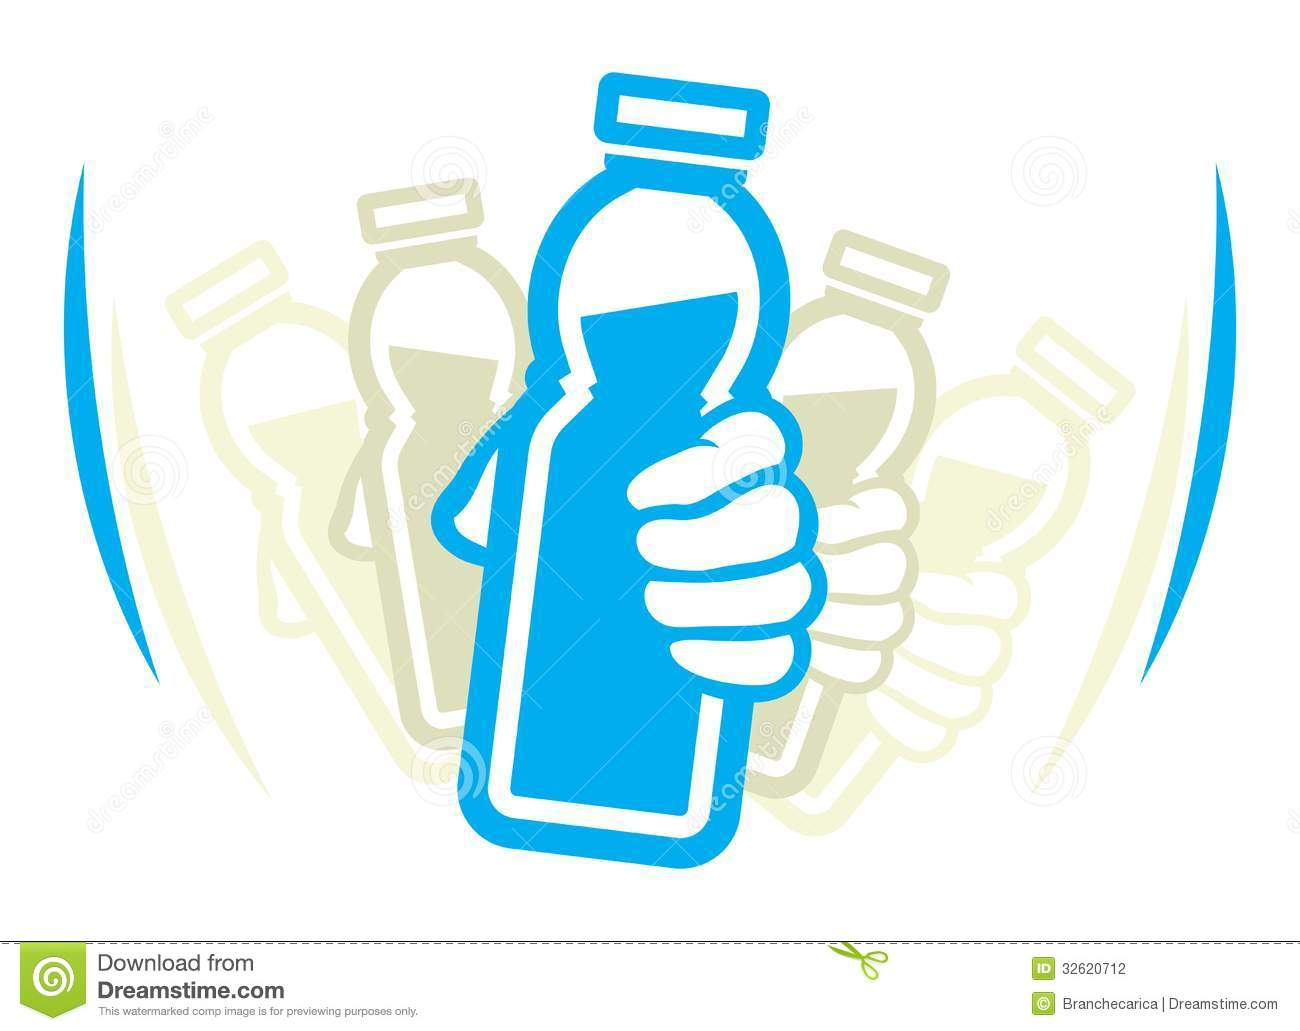 Stock Photography Shake Bottle Yogurt Use Vector Illustration Image32620712 as well Open Plan besides 2014 Sdc Winners additionally A Brazilian Cargo Container Office By Roccovidal likewise The Royal Exchange. on open space office design